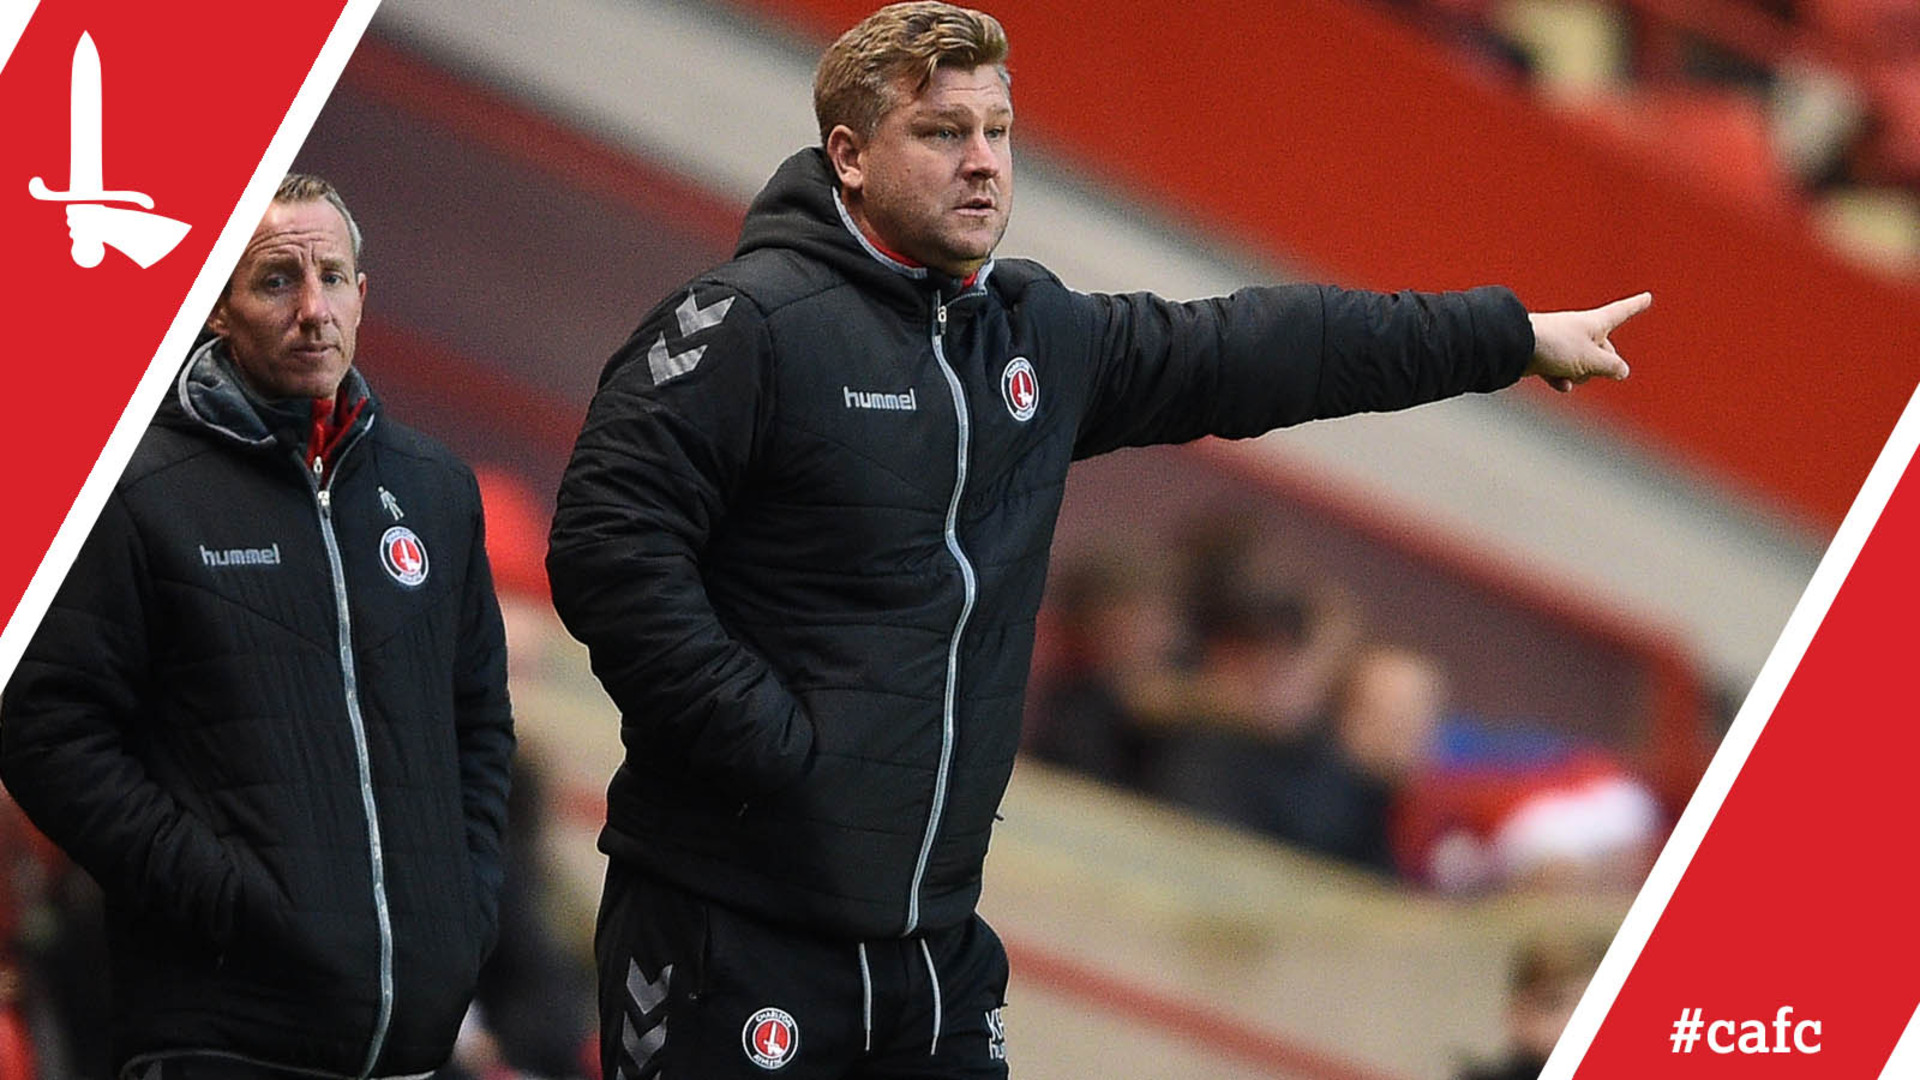 Karl Robinson on Nicky Ajose's return to Charlton